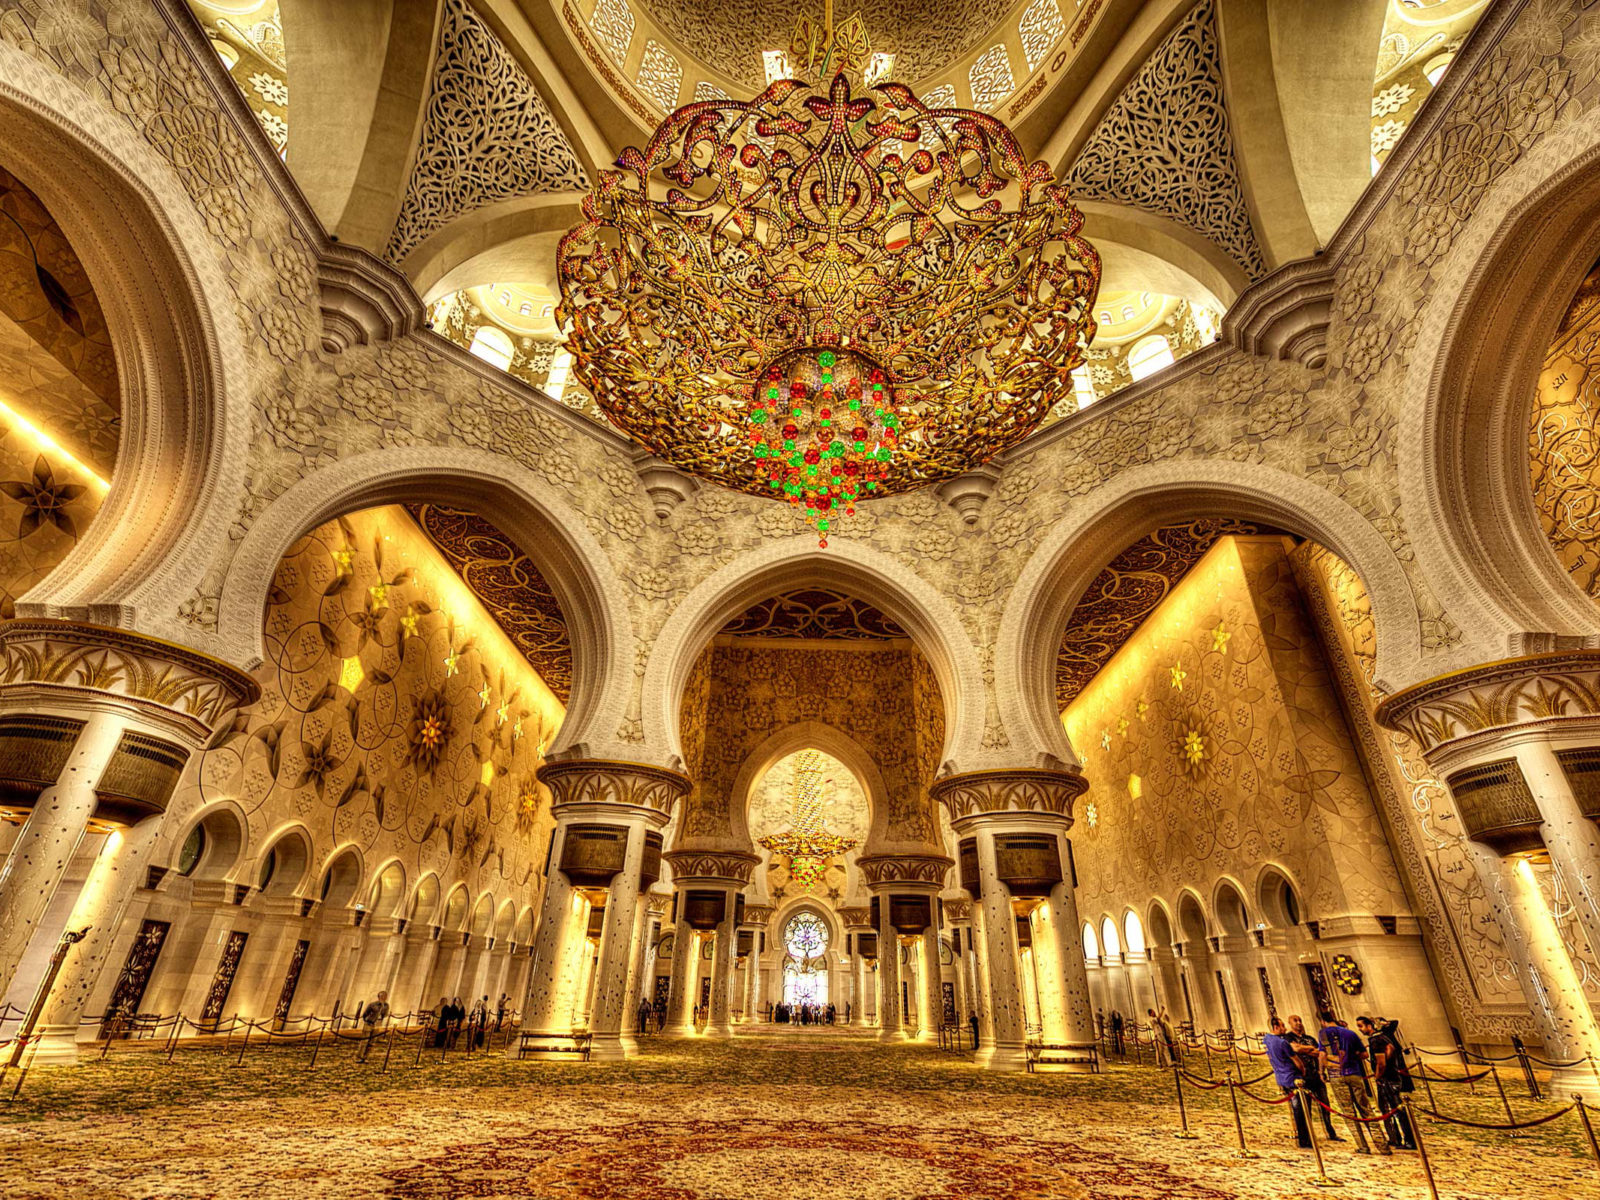 Jordan Wallpaper Iphone X Sheikh Zayed Grand Mosque Interior Seven Imported